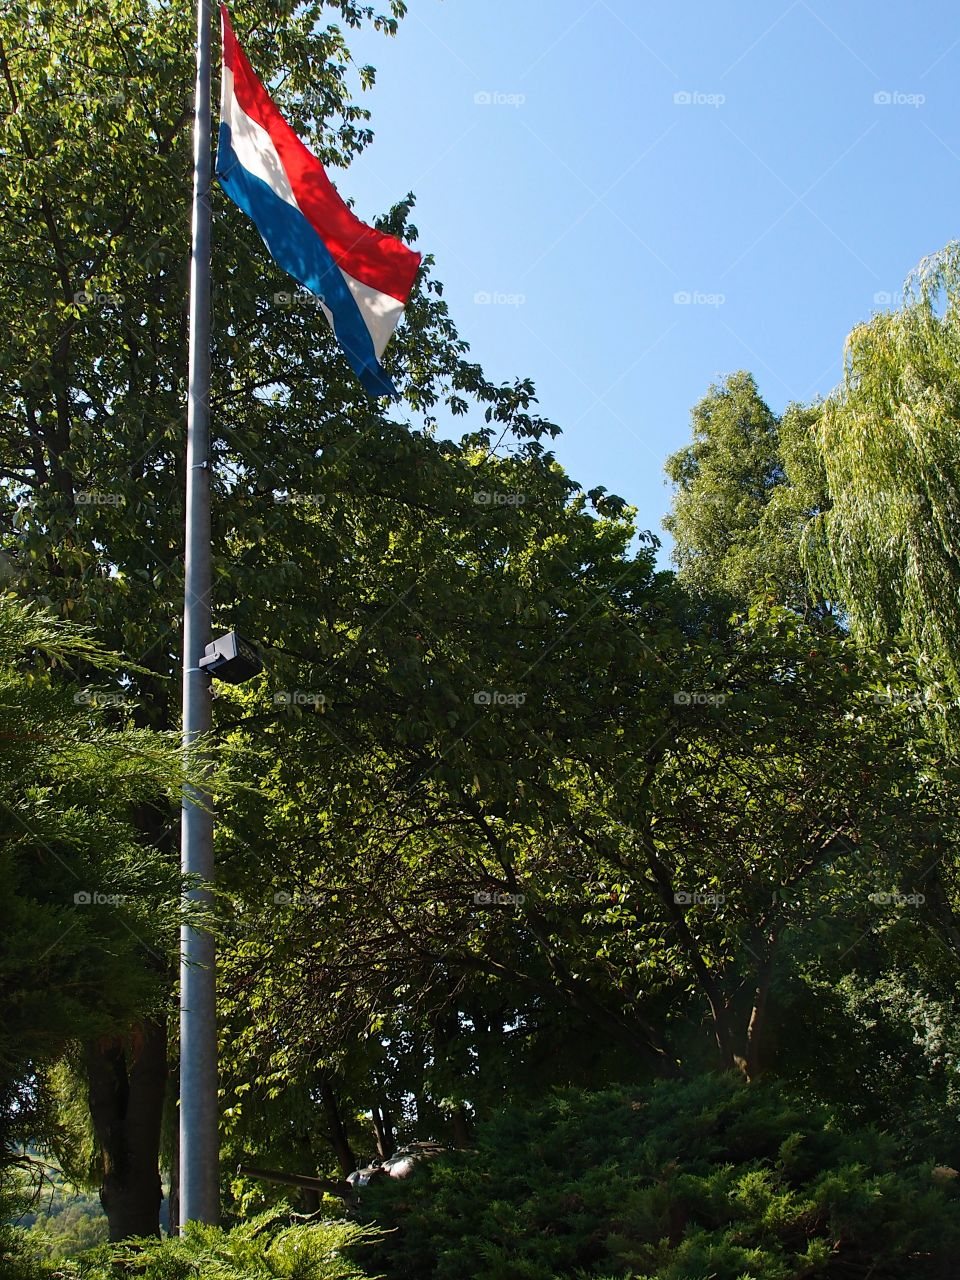 The flag of the wonderful people of Luxembourg waves through the trees on a sunny summer day.